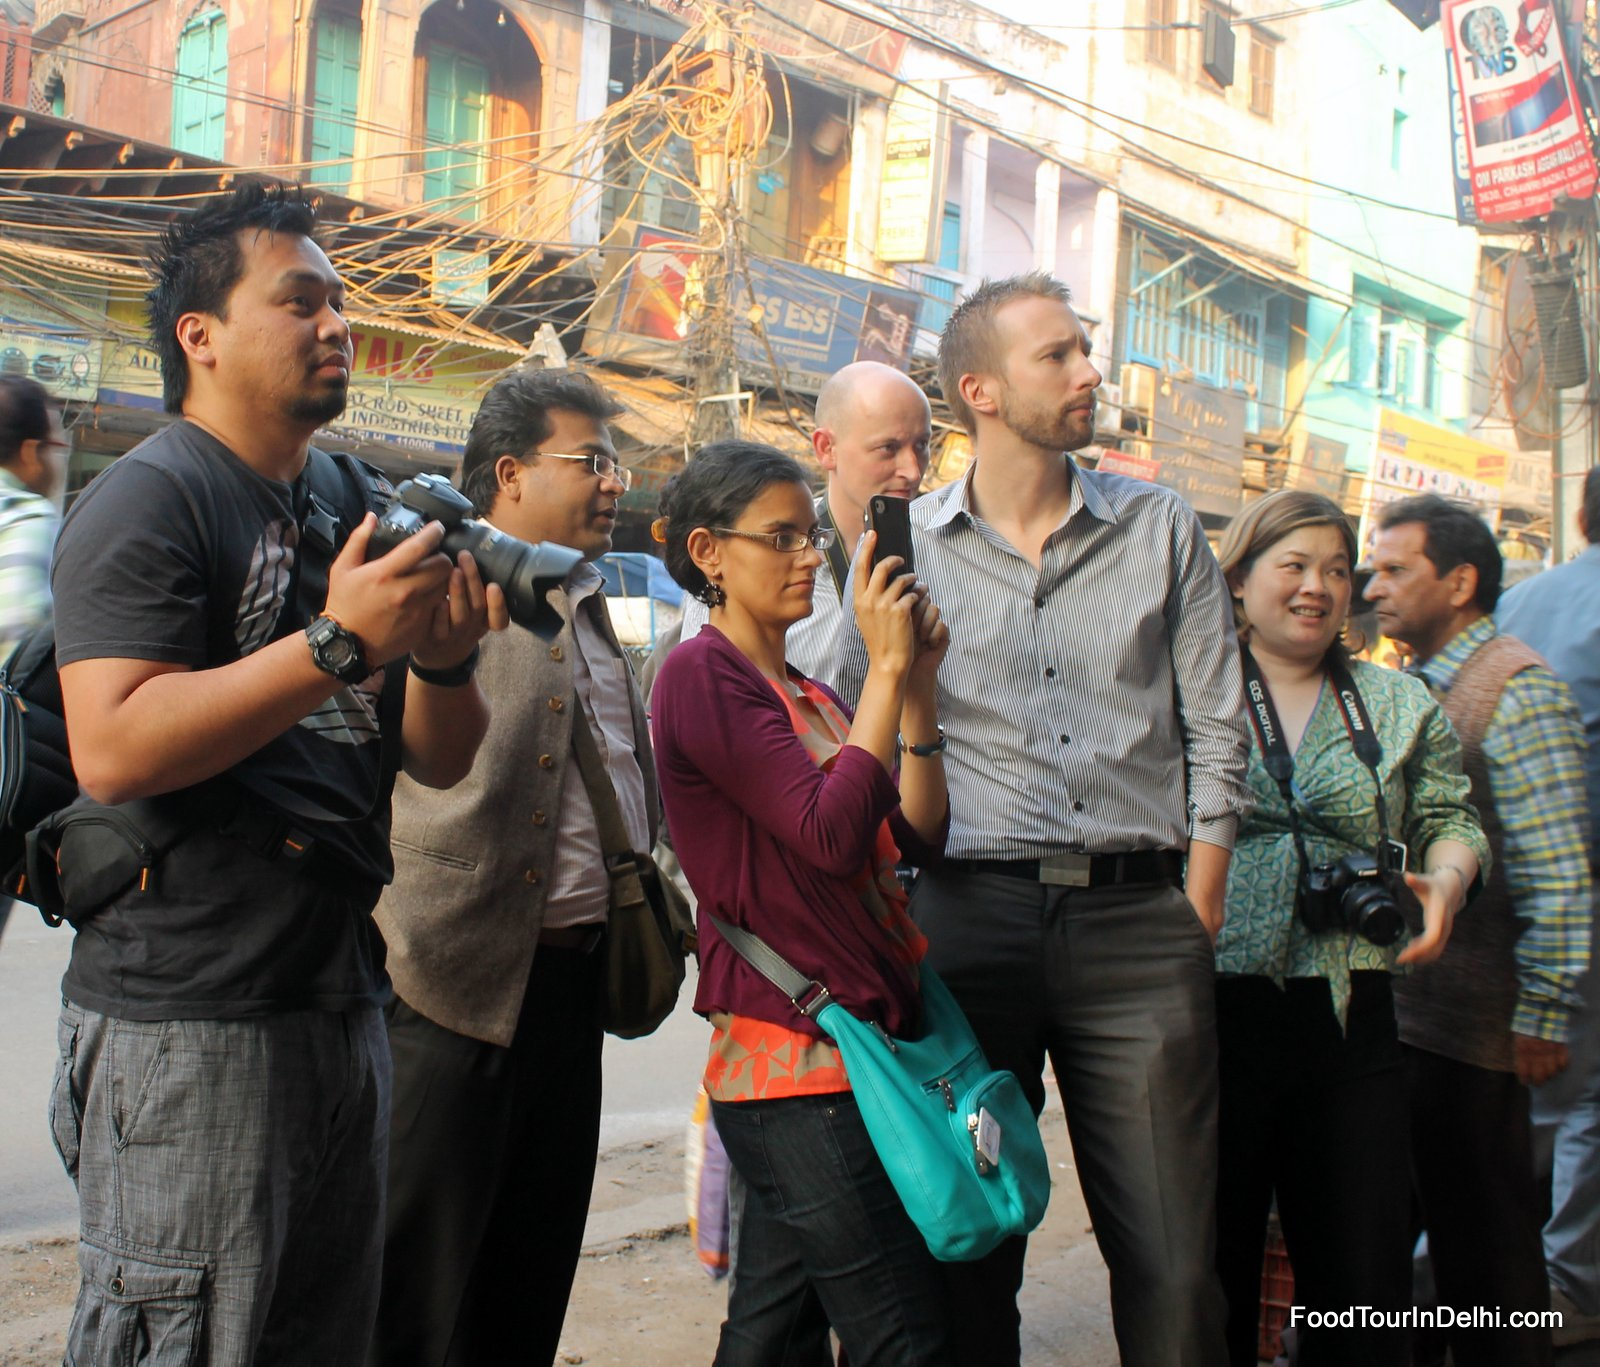 Some street photography in Old Delhi